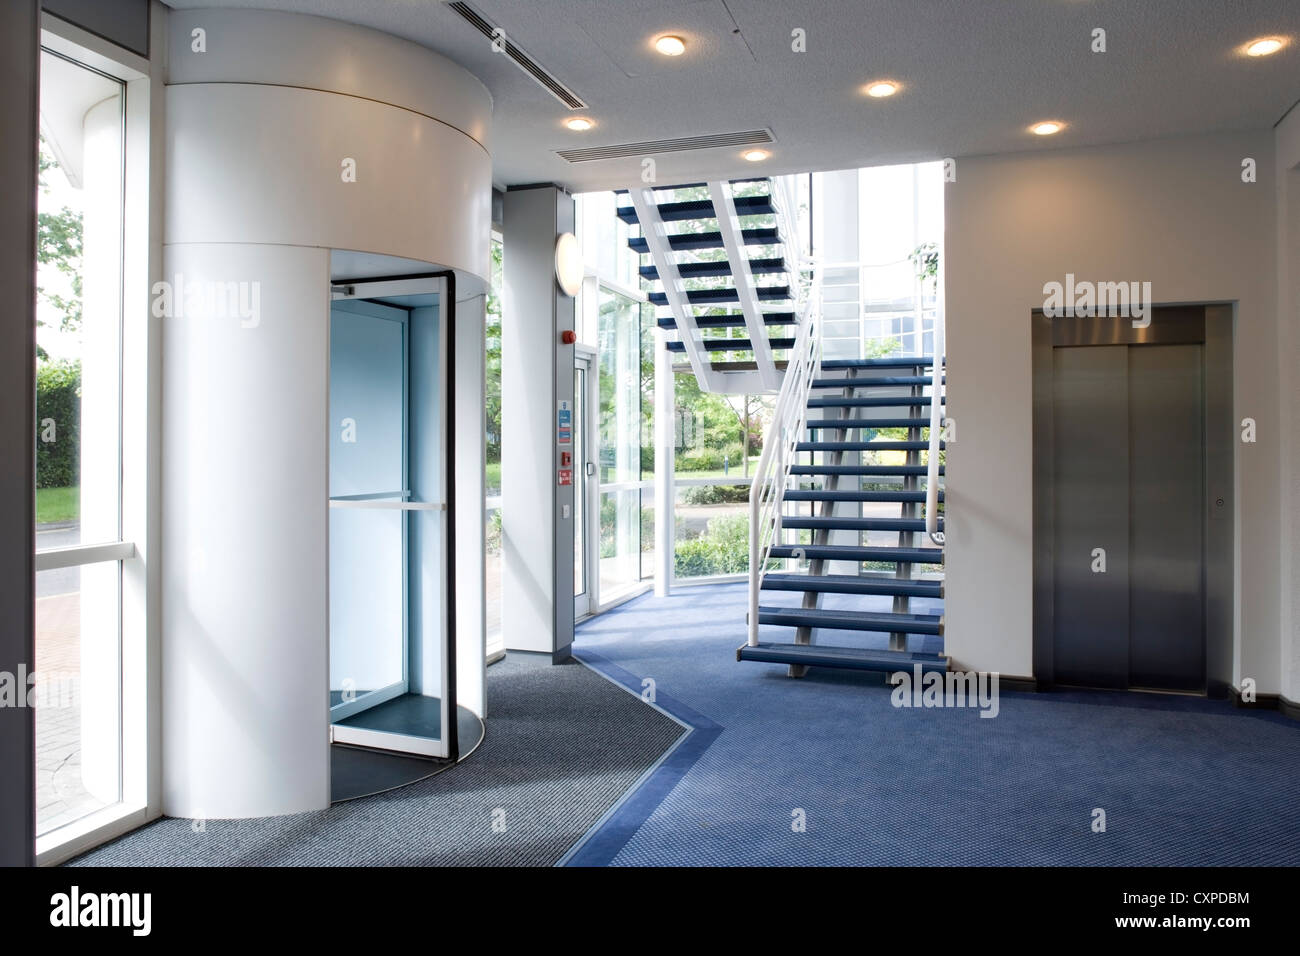 Lift Lobby Office Stockfotos & Lift Lobby Office Bilder - Alamy